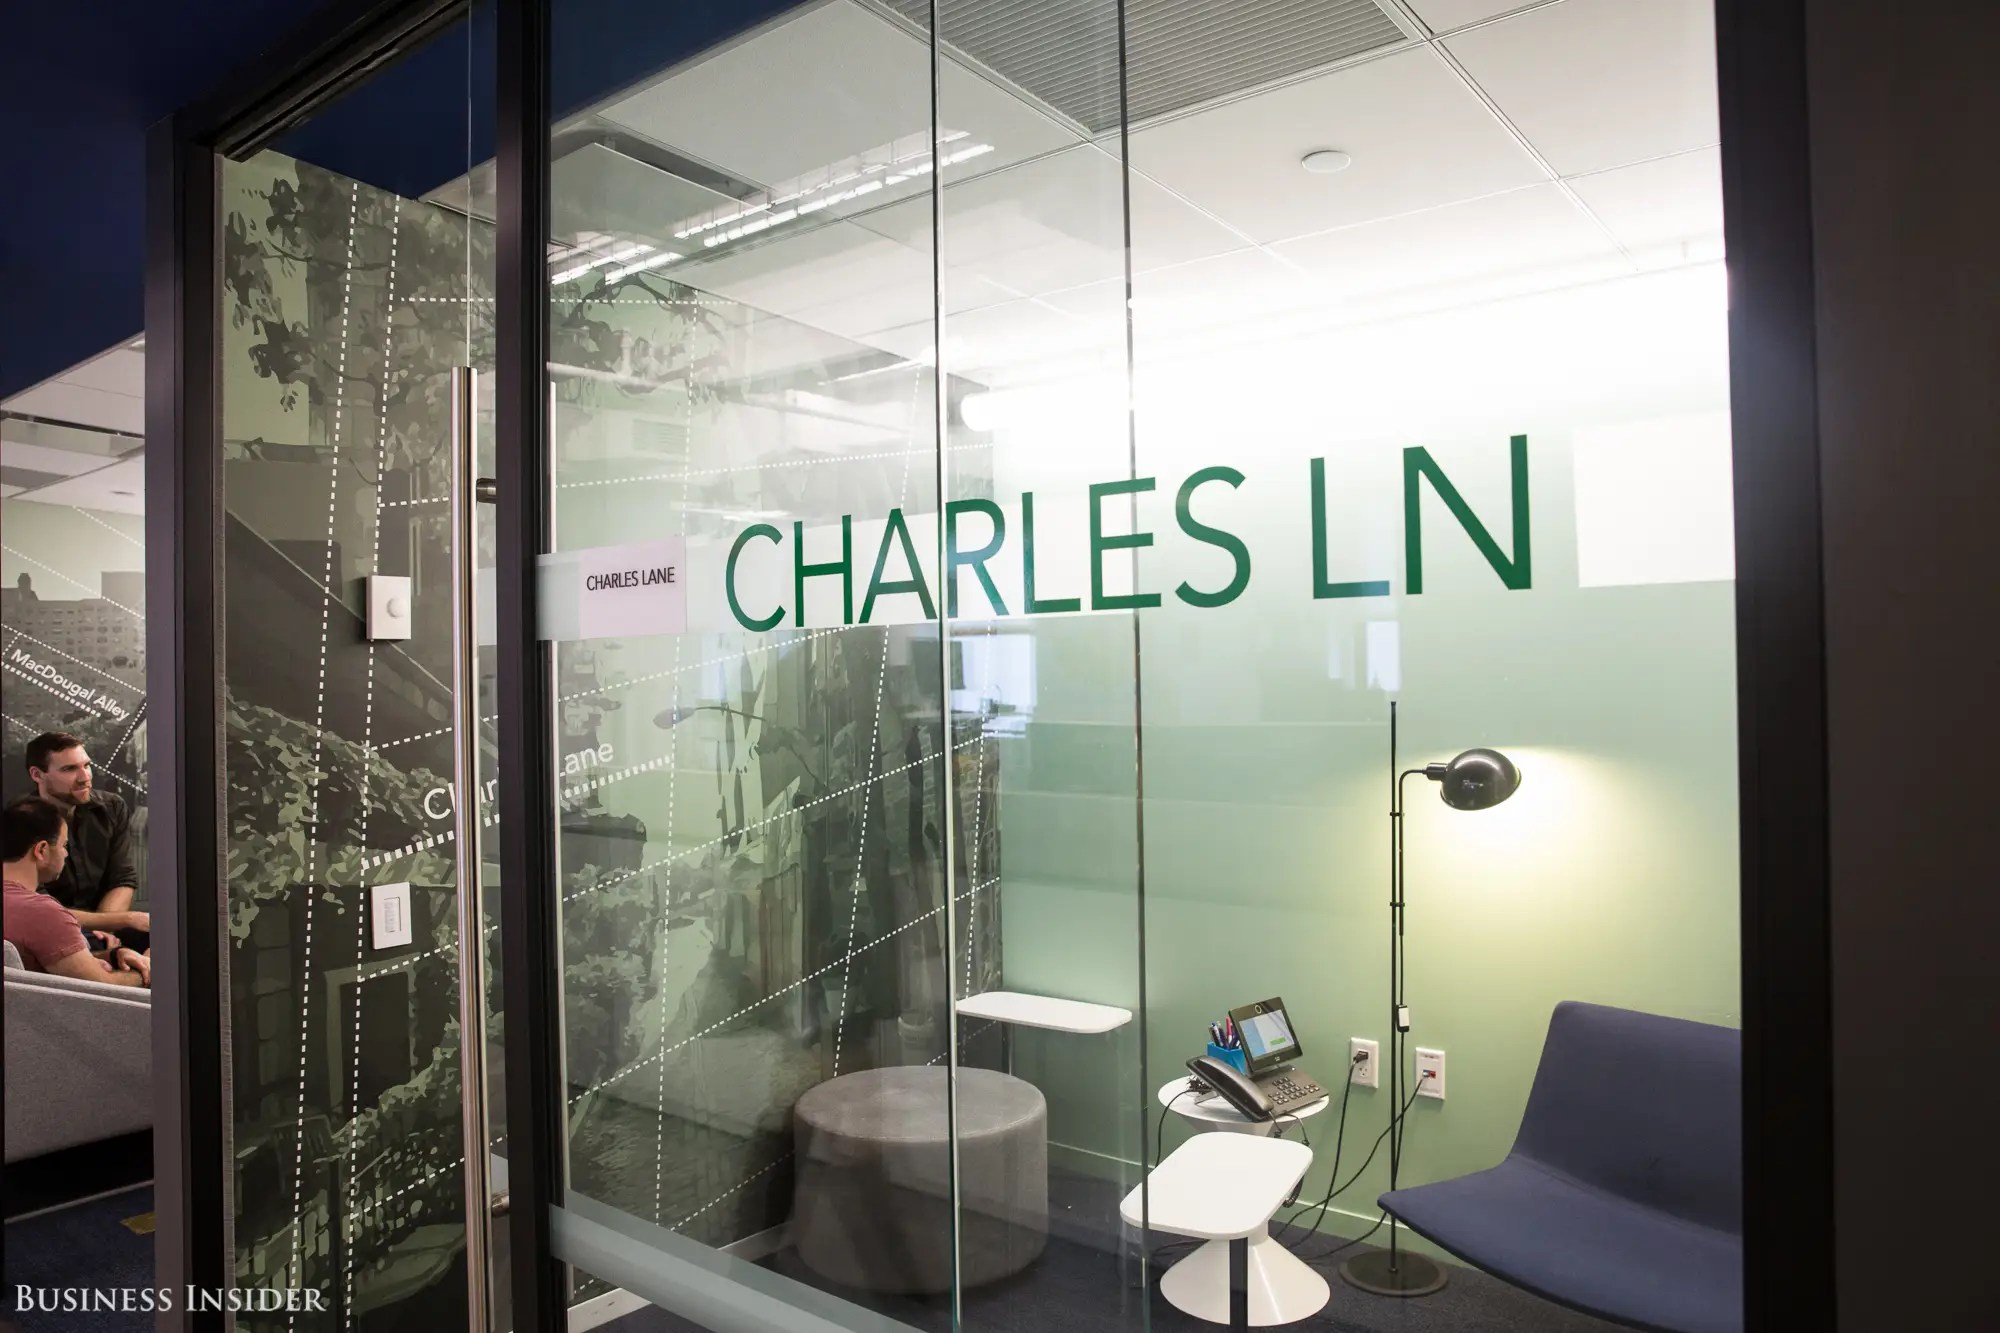 When it comes to conference room names, each floor has a different theme, including New York City street names and former SNL cast members.